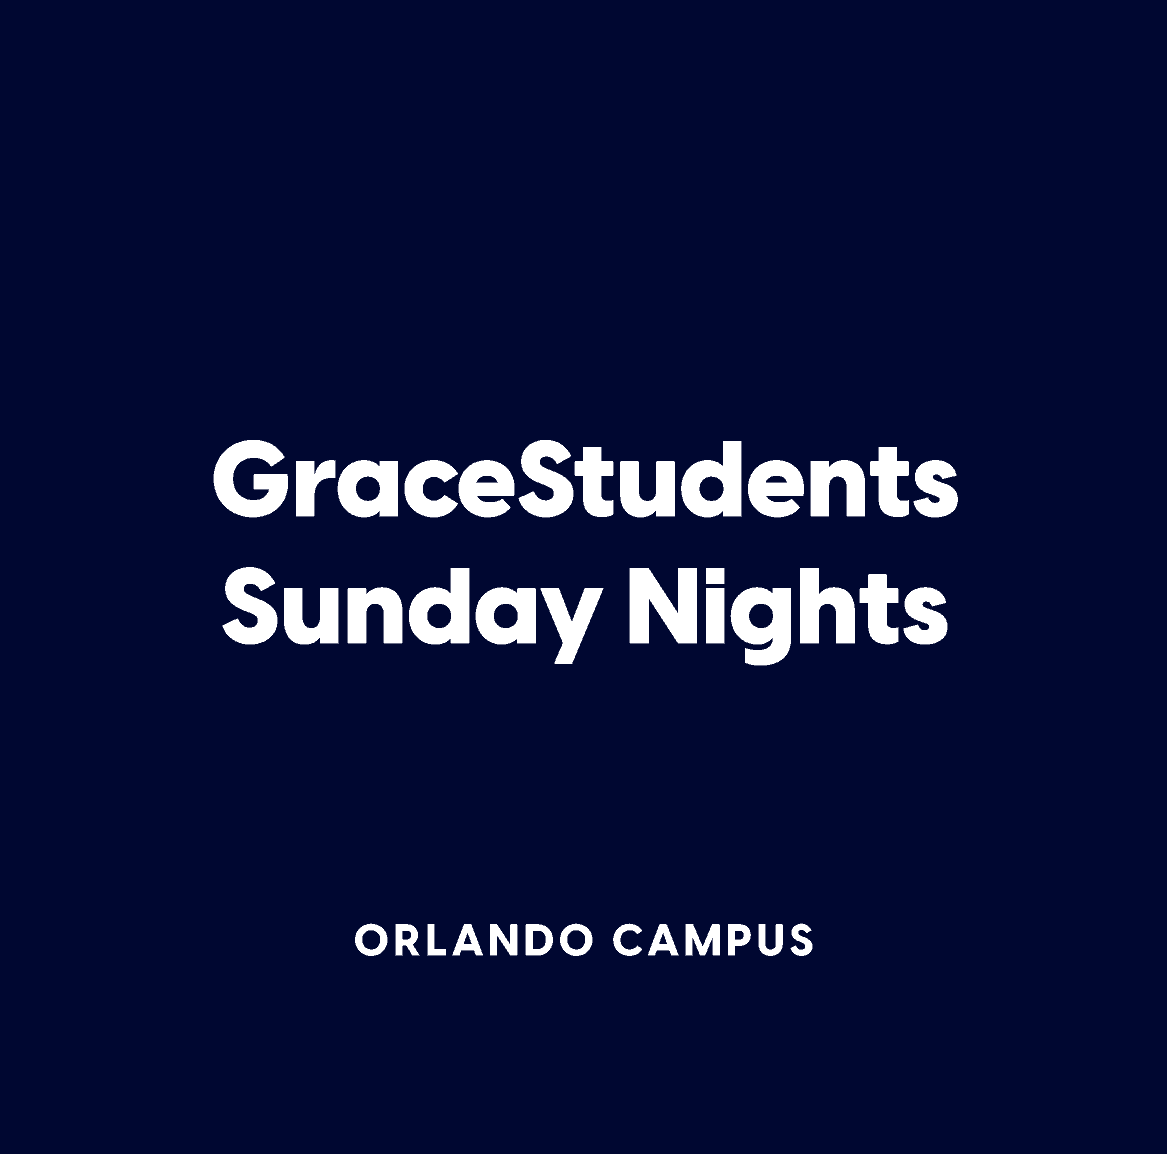 Orlando GraceStudents Sunday Nights